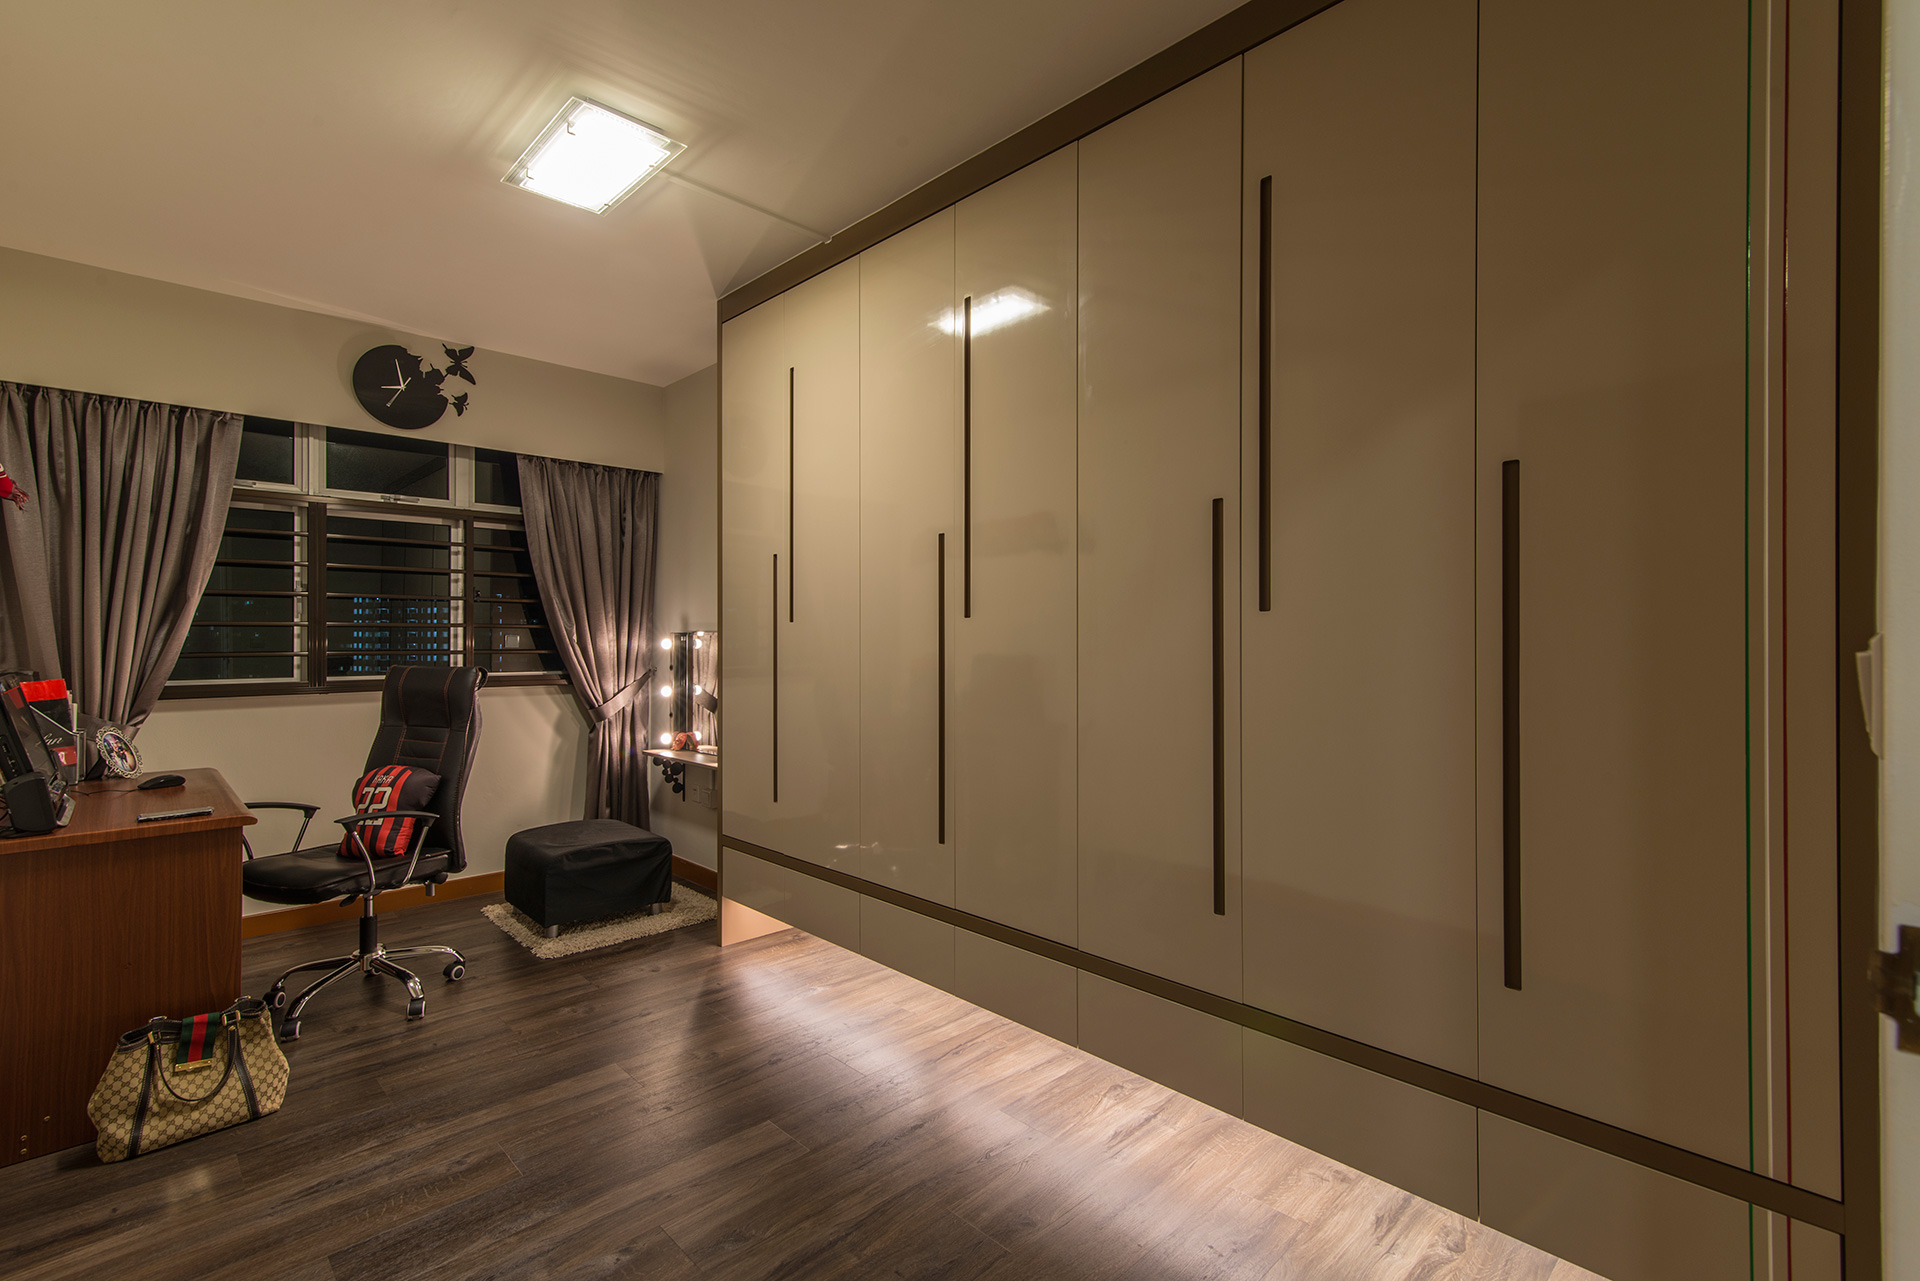 Country, Rustic Design - Study Room - HDB 5 Room - Design by Ideal Design Interior Pte Ltd